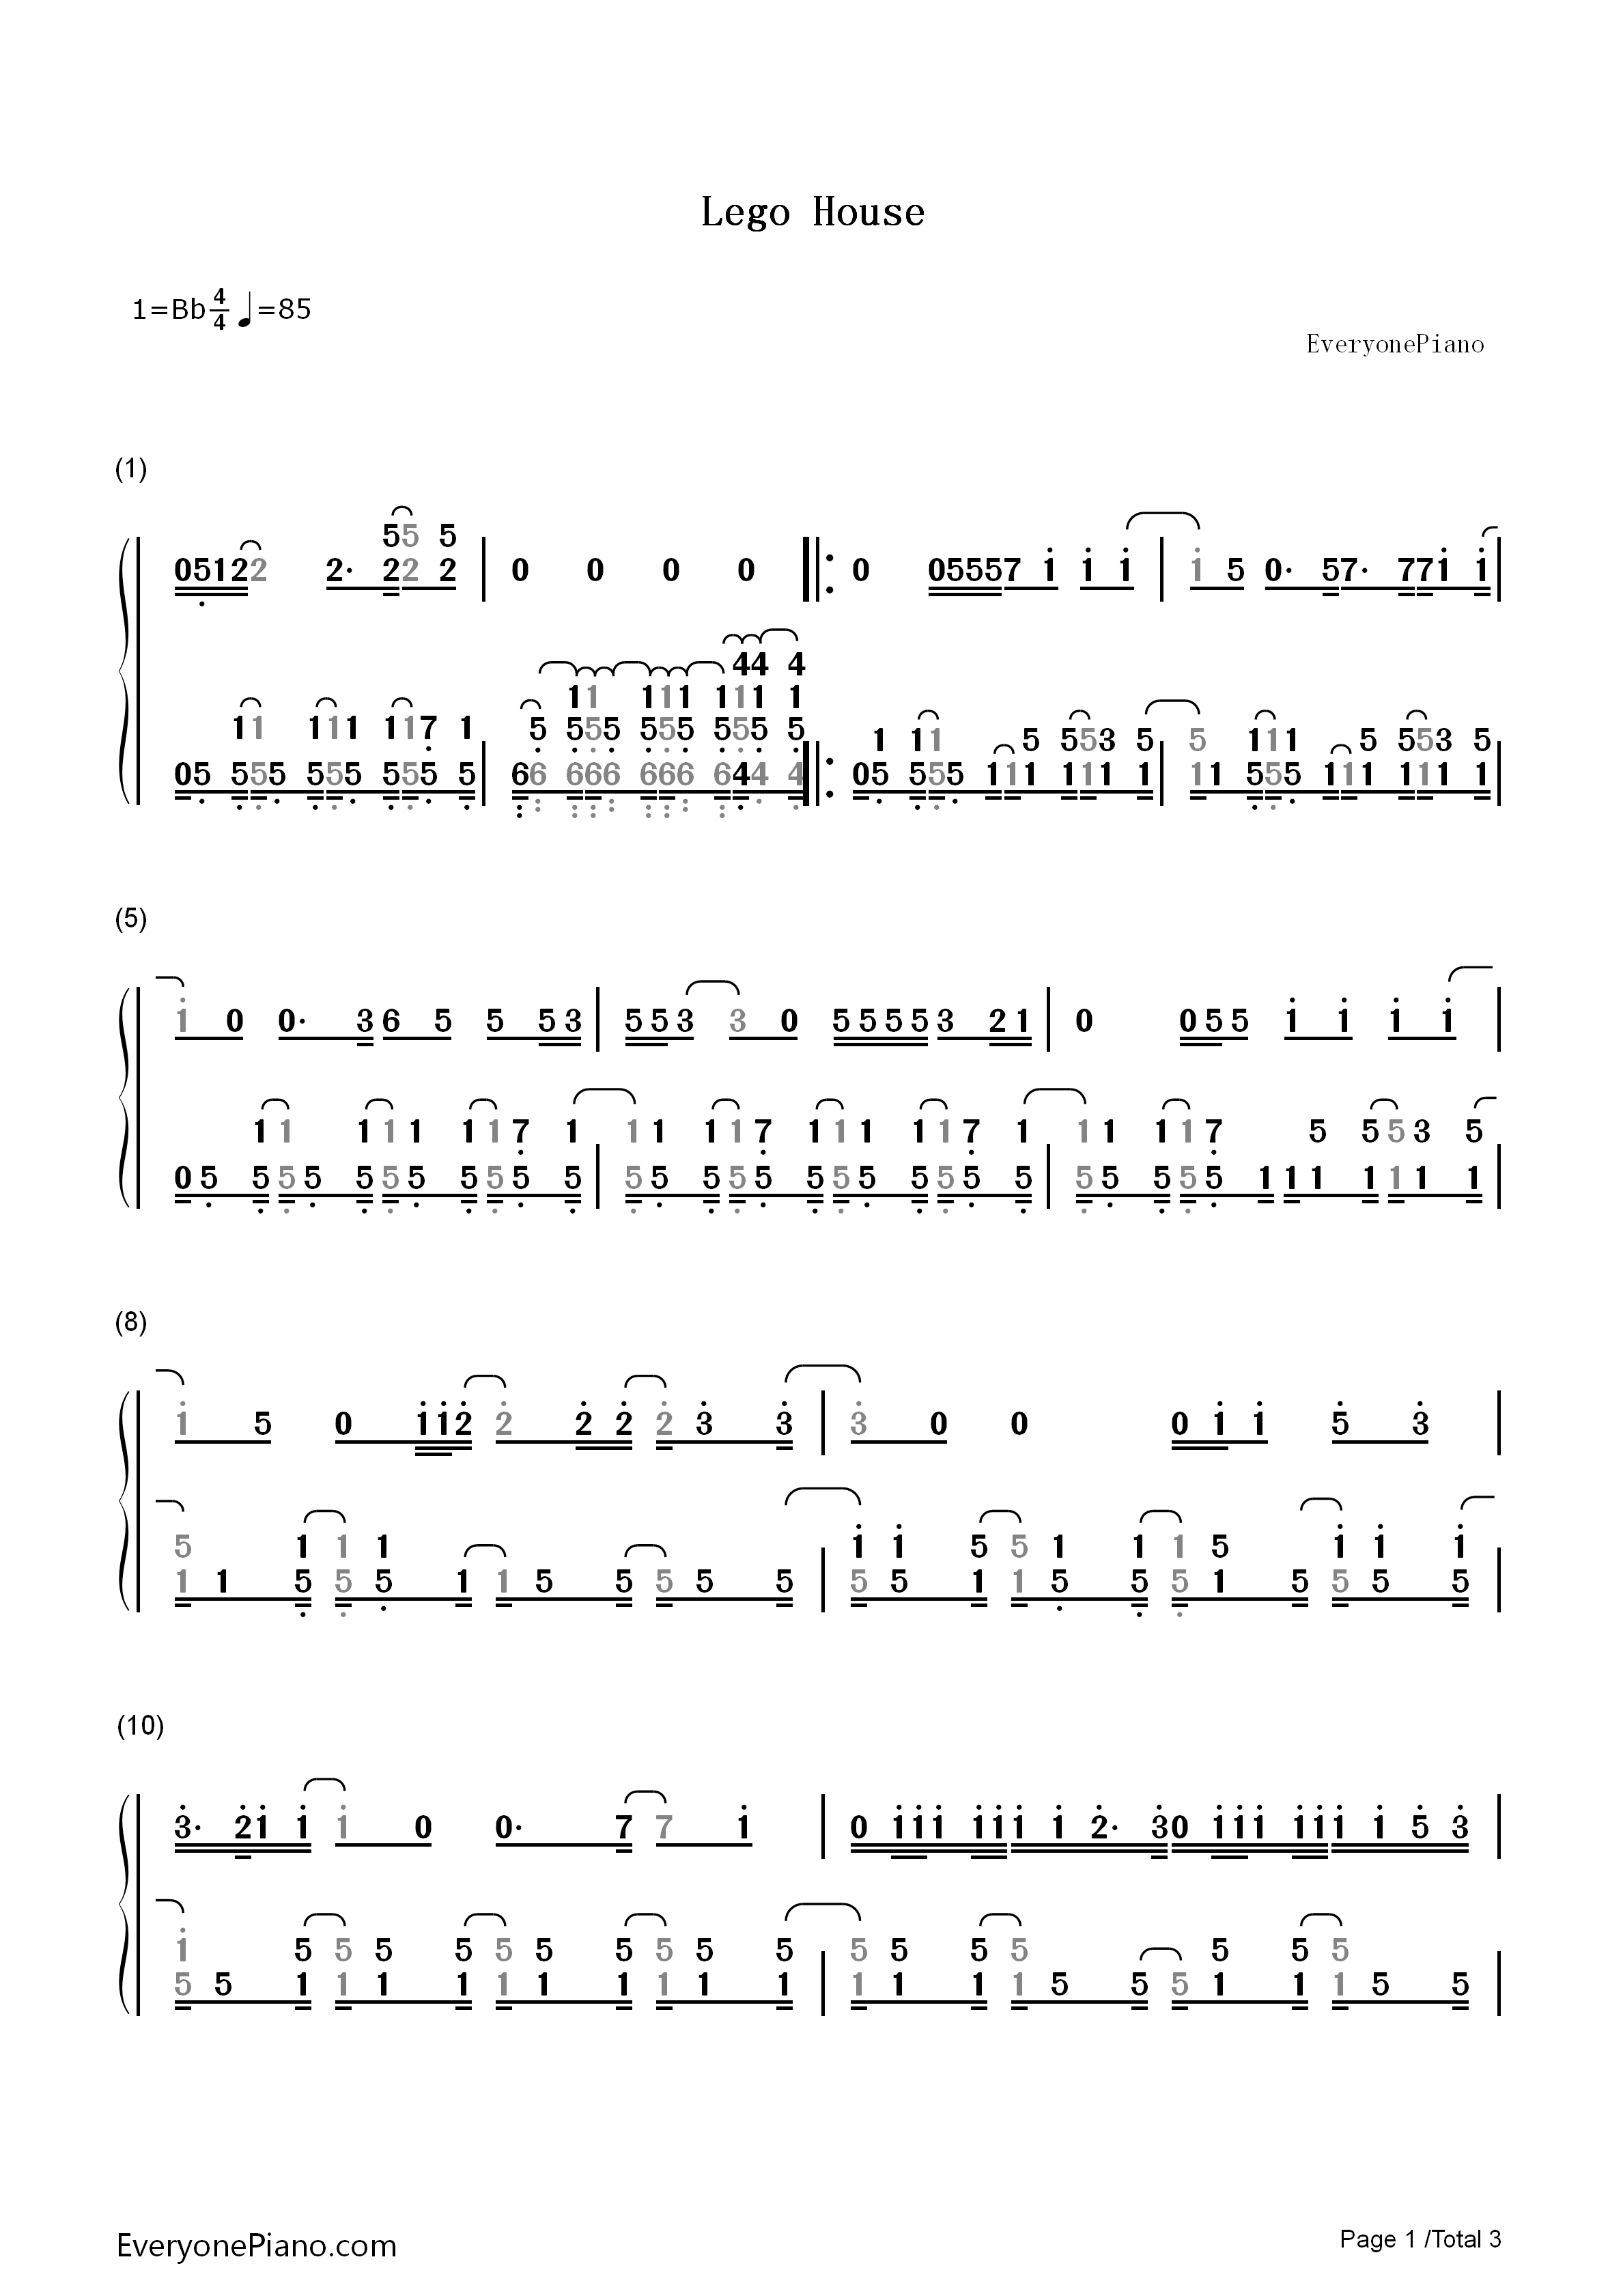 Lego house ed sheeran numbered musical notation preview 1 free listen now print sheet lego house ed sheeran numbered musical notation preview 1 hexwebz Images